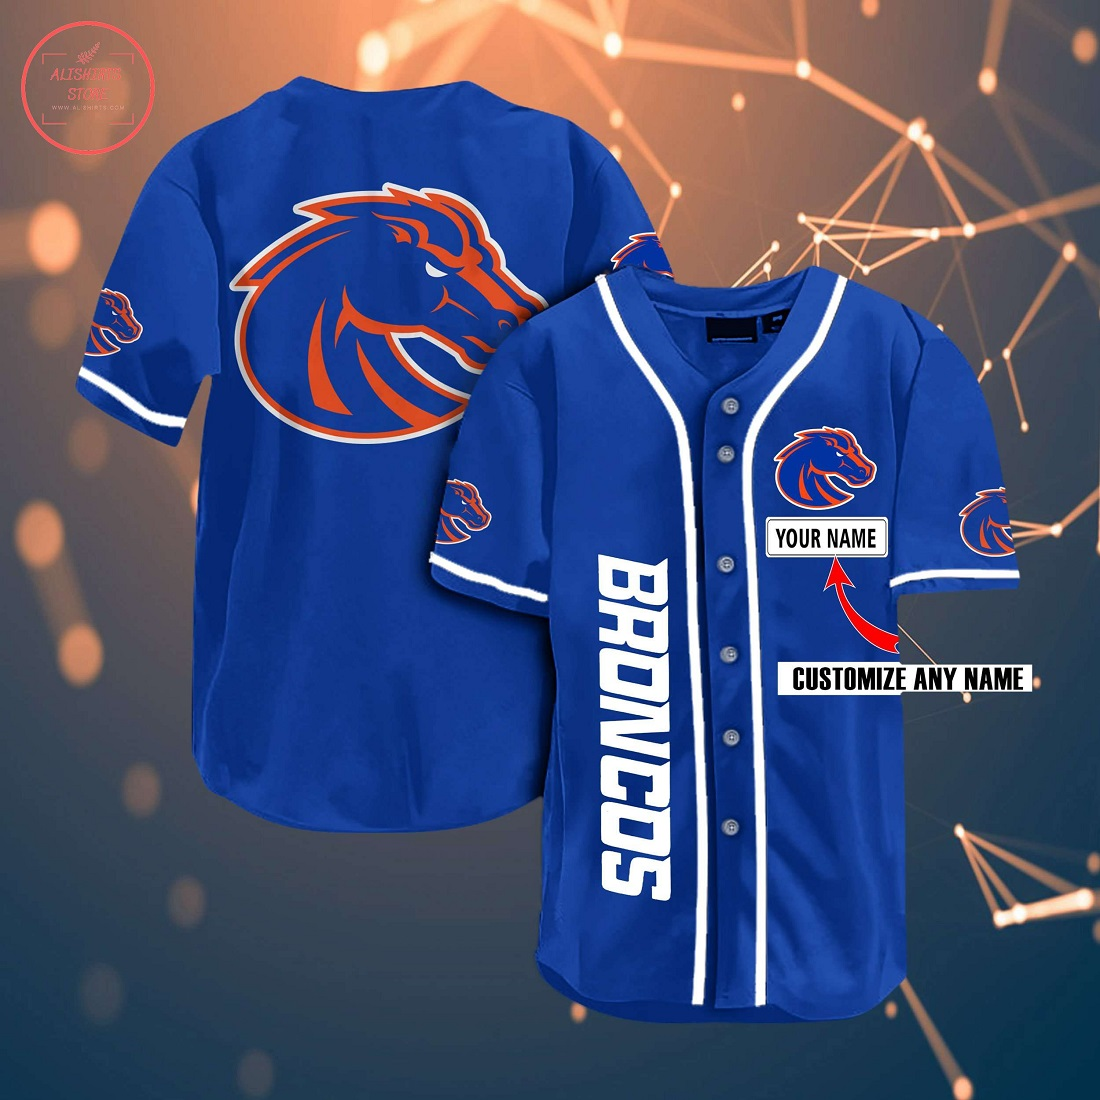 Ncaa Boise State Broncos Personalized Baseball Jersey